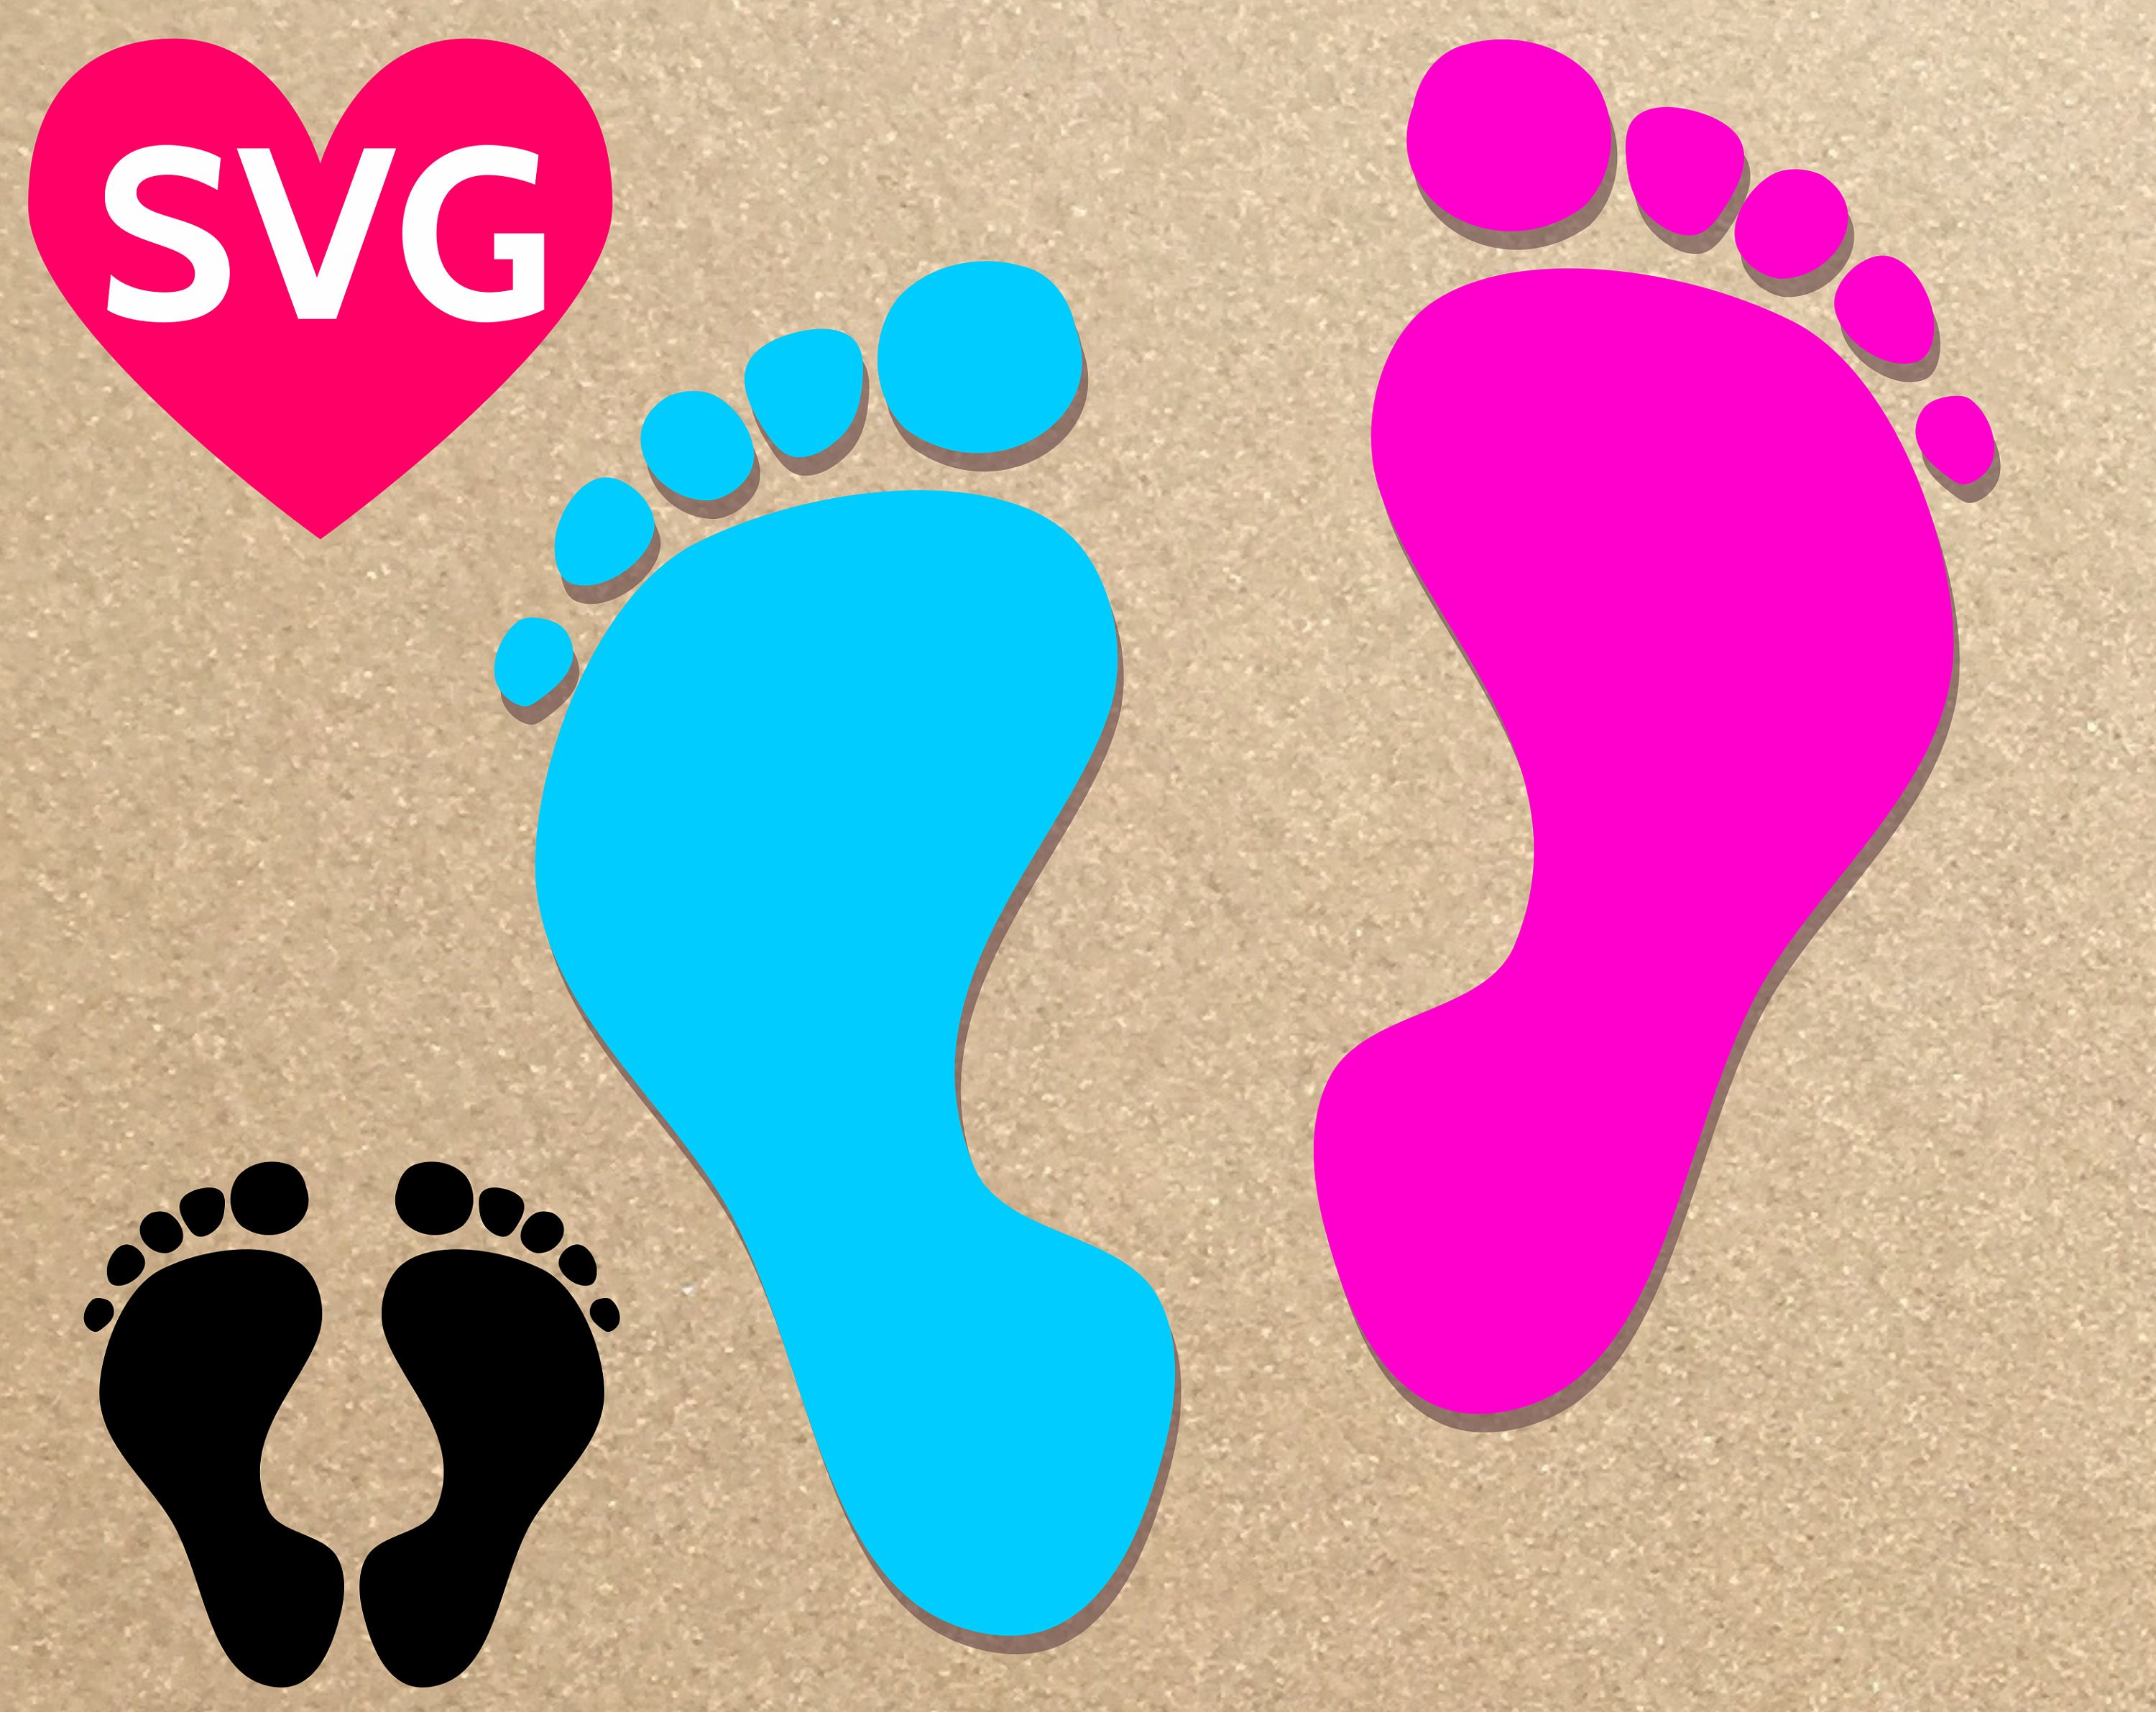 3000x2382 Baby Footprint Svg, Baby Feet Svg, Baby Foot Svg, Baby Foot Print